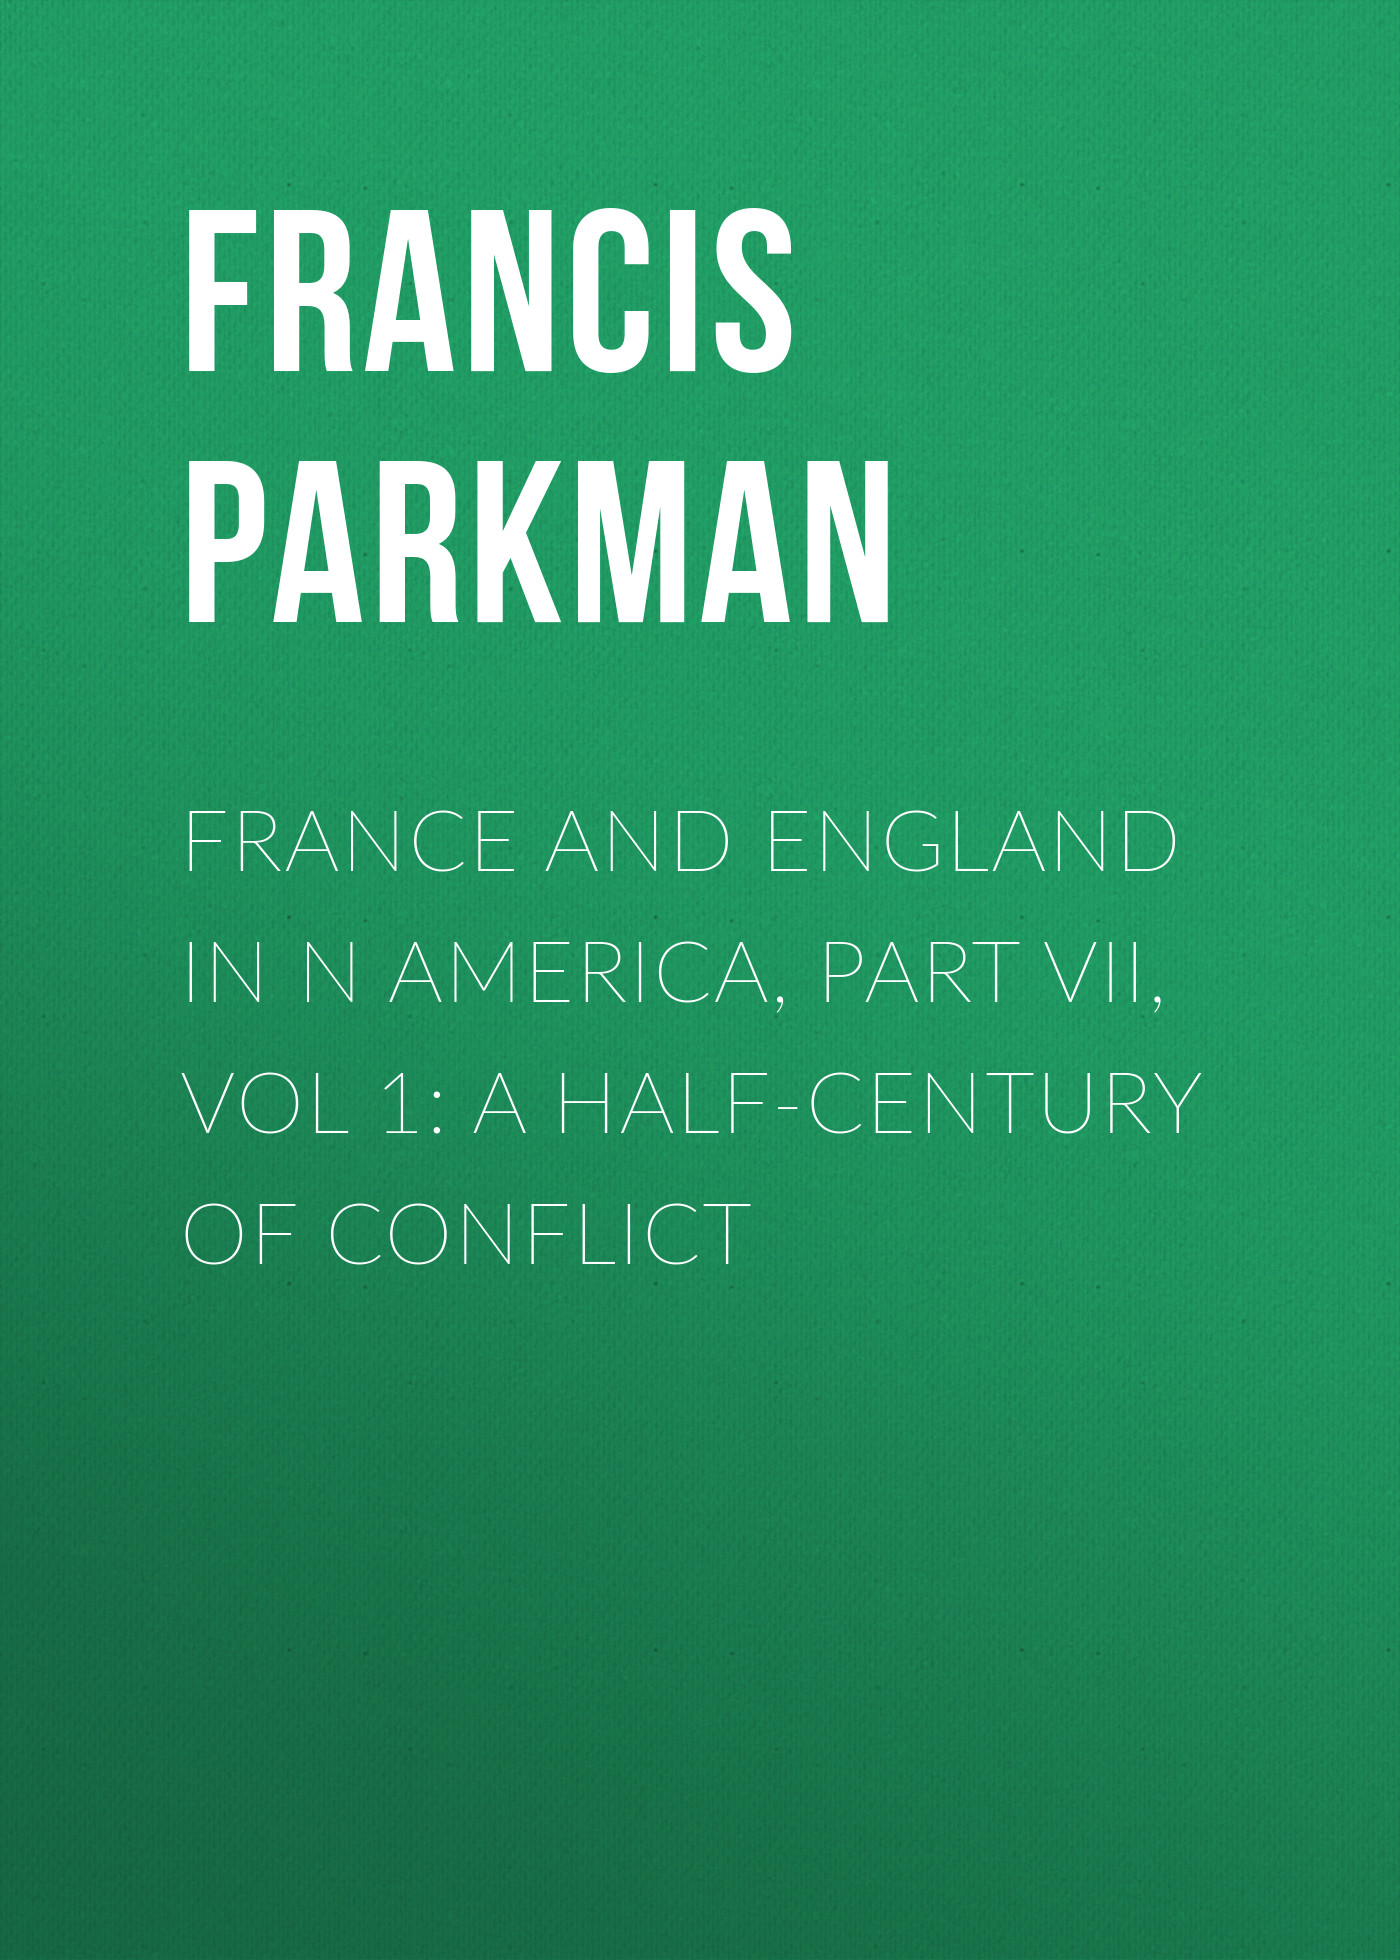 цена на Francis Parkman France and England in N America, Part VII, Vol 1: A Half-Century of Conflict